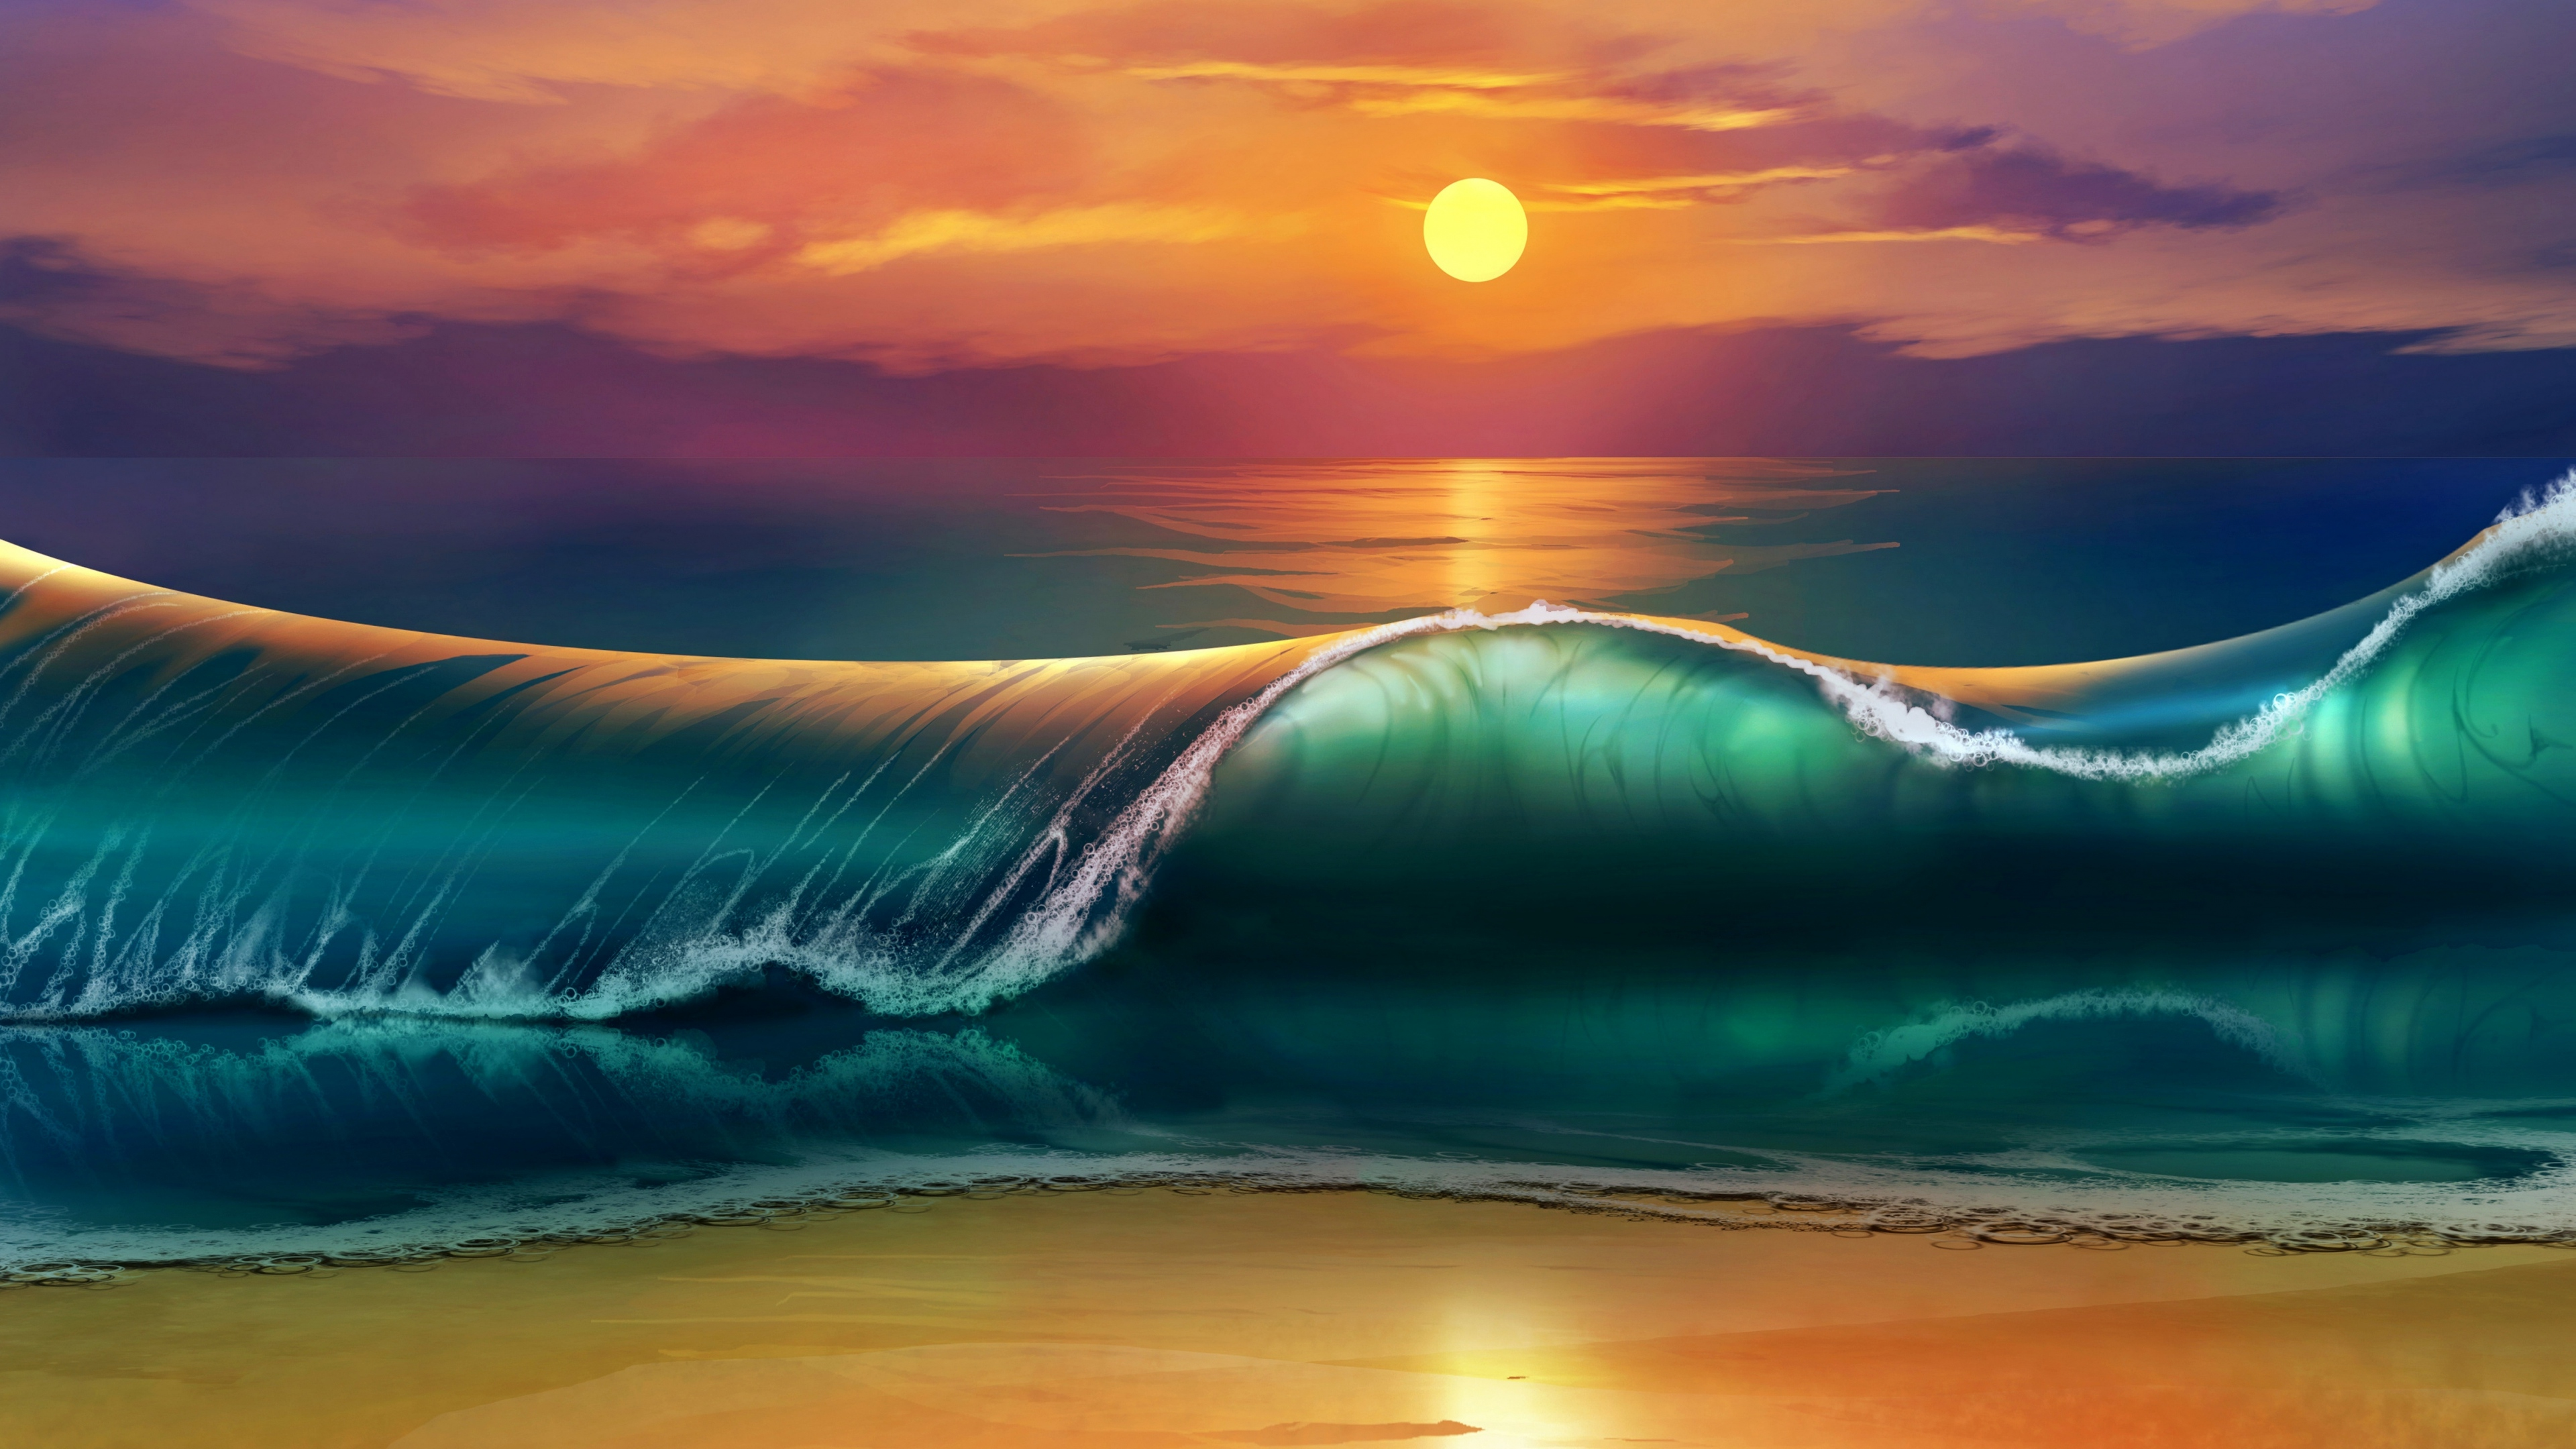 Wallpaper 38402160 art sunset beach sea waves 4K Ultra HD HD 3840x2160